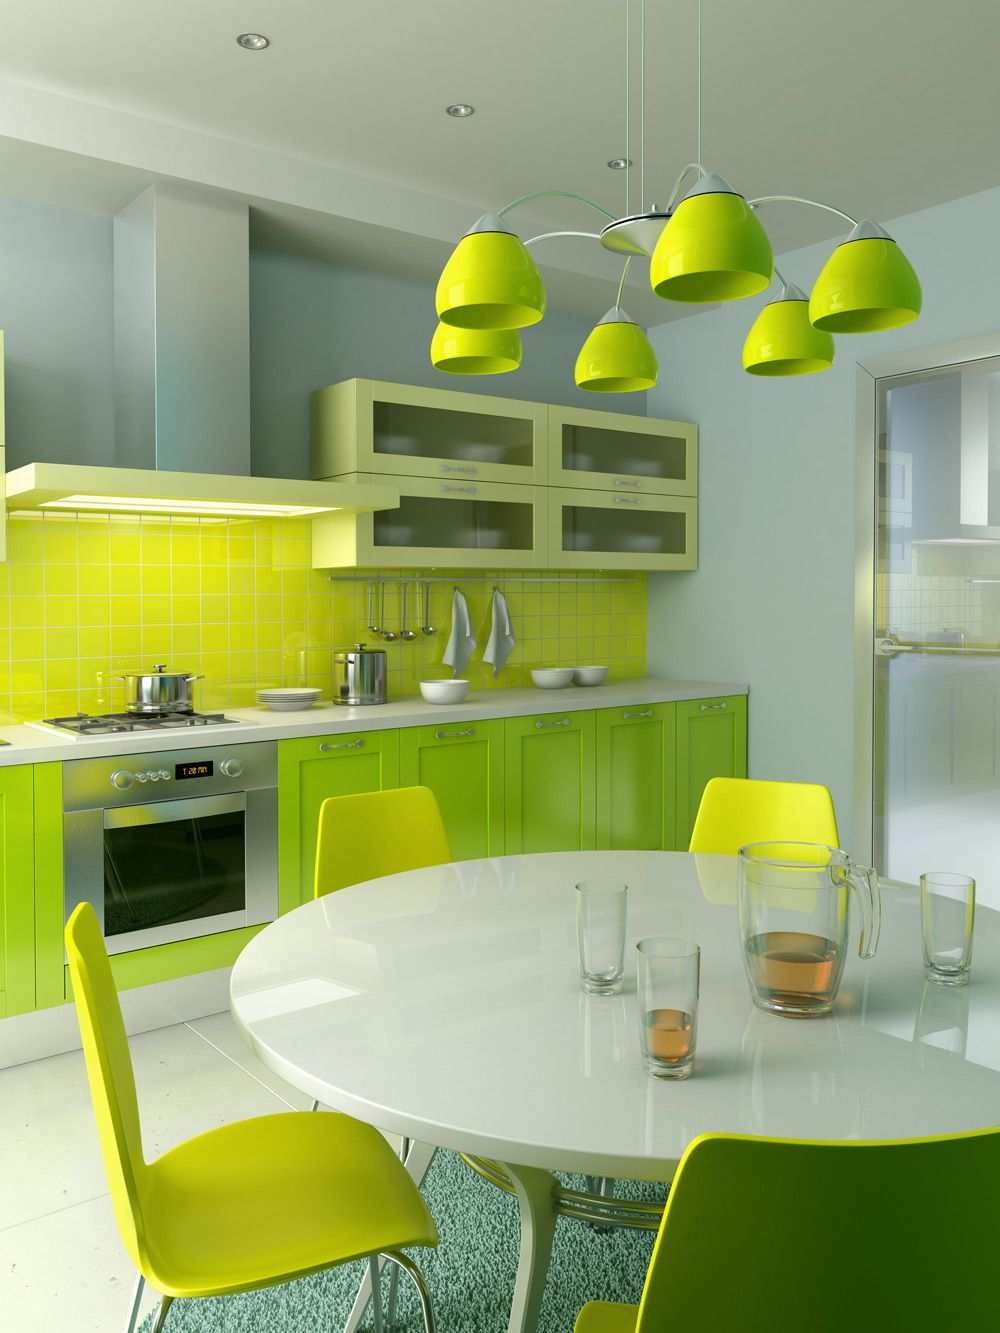 21 Refreshing Green Kitchen Design Ideas | Green kitchen, Kitchens ...